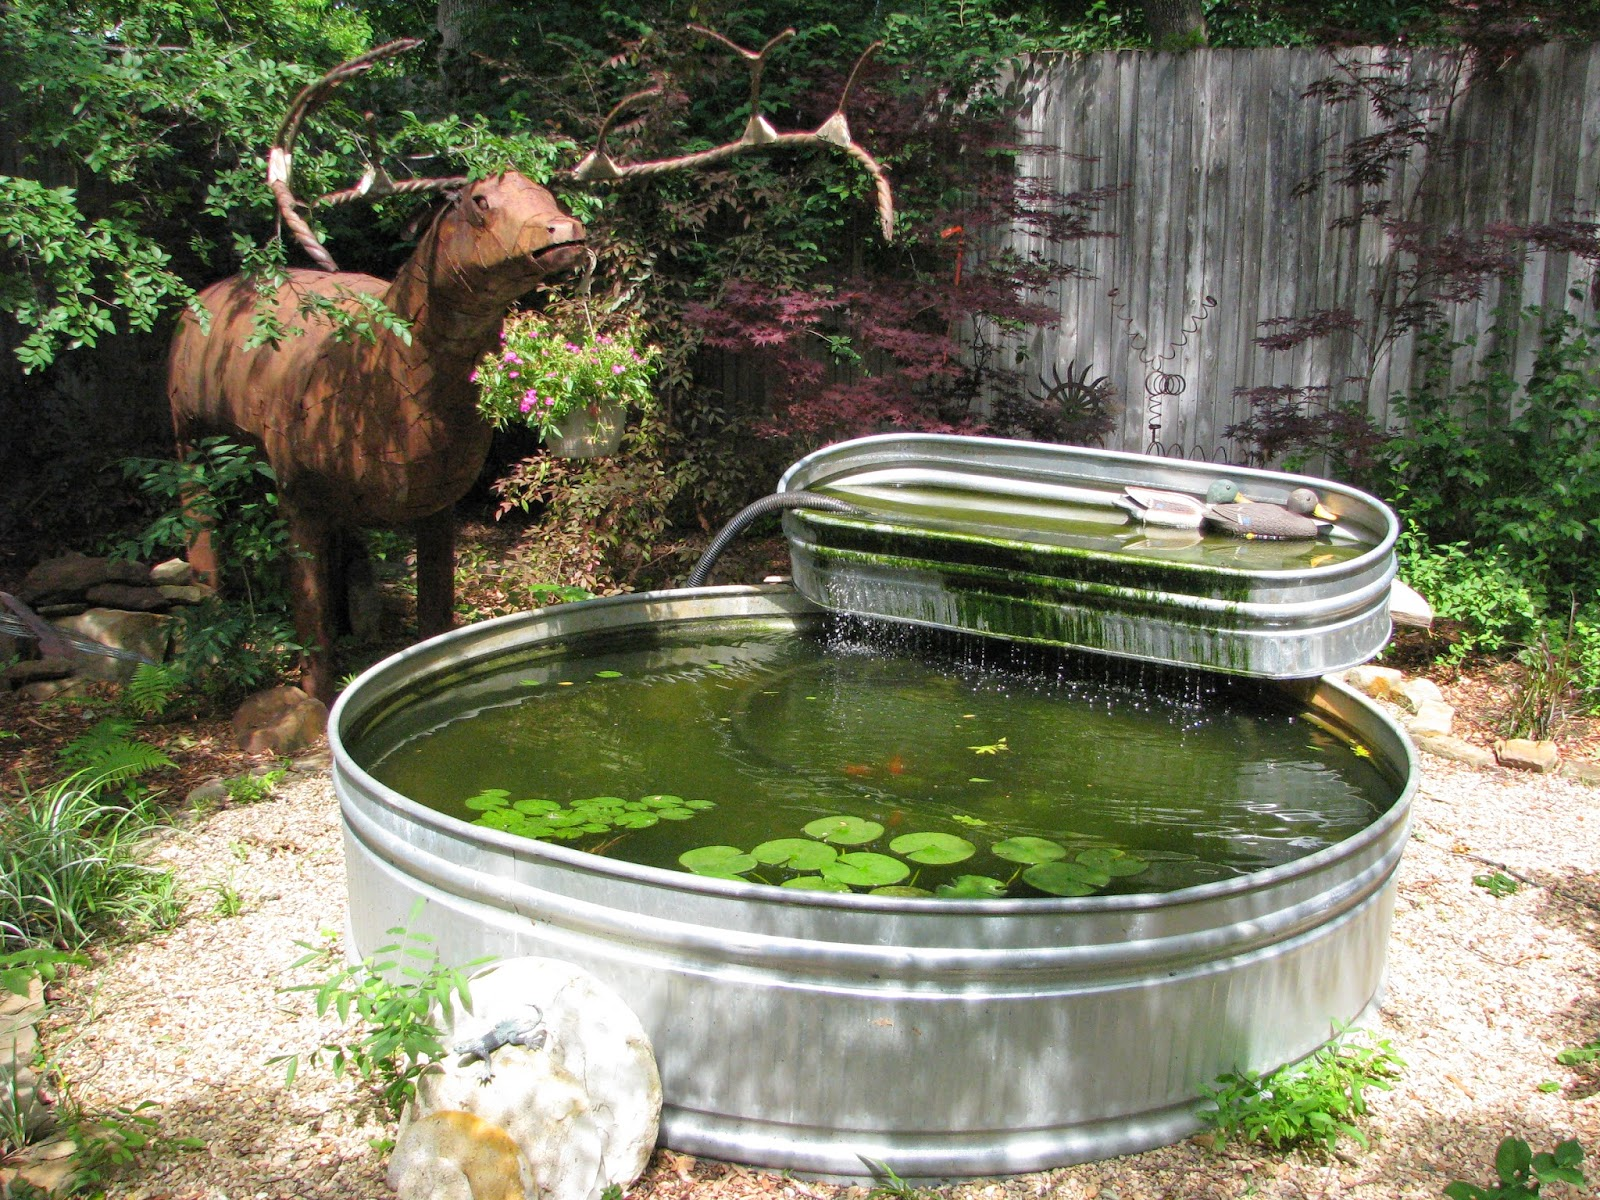 As I Was Getting Ready To Leave The Garden, I Passed By This Stock Tank  Combo With A Large Metal Elk Standing Nearby And Two Decoy Ducks In The  Upper Tank.